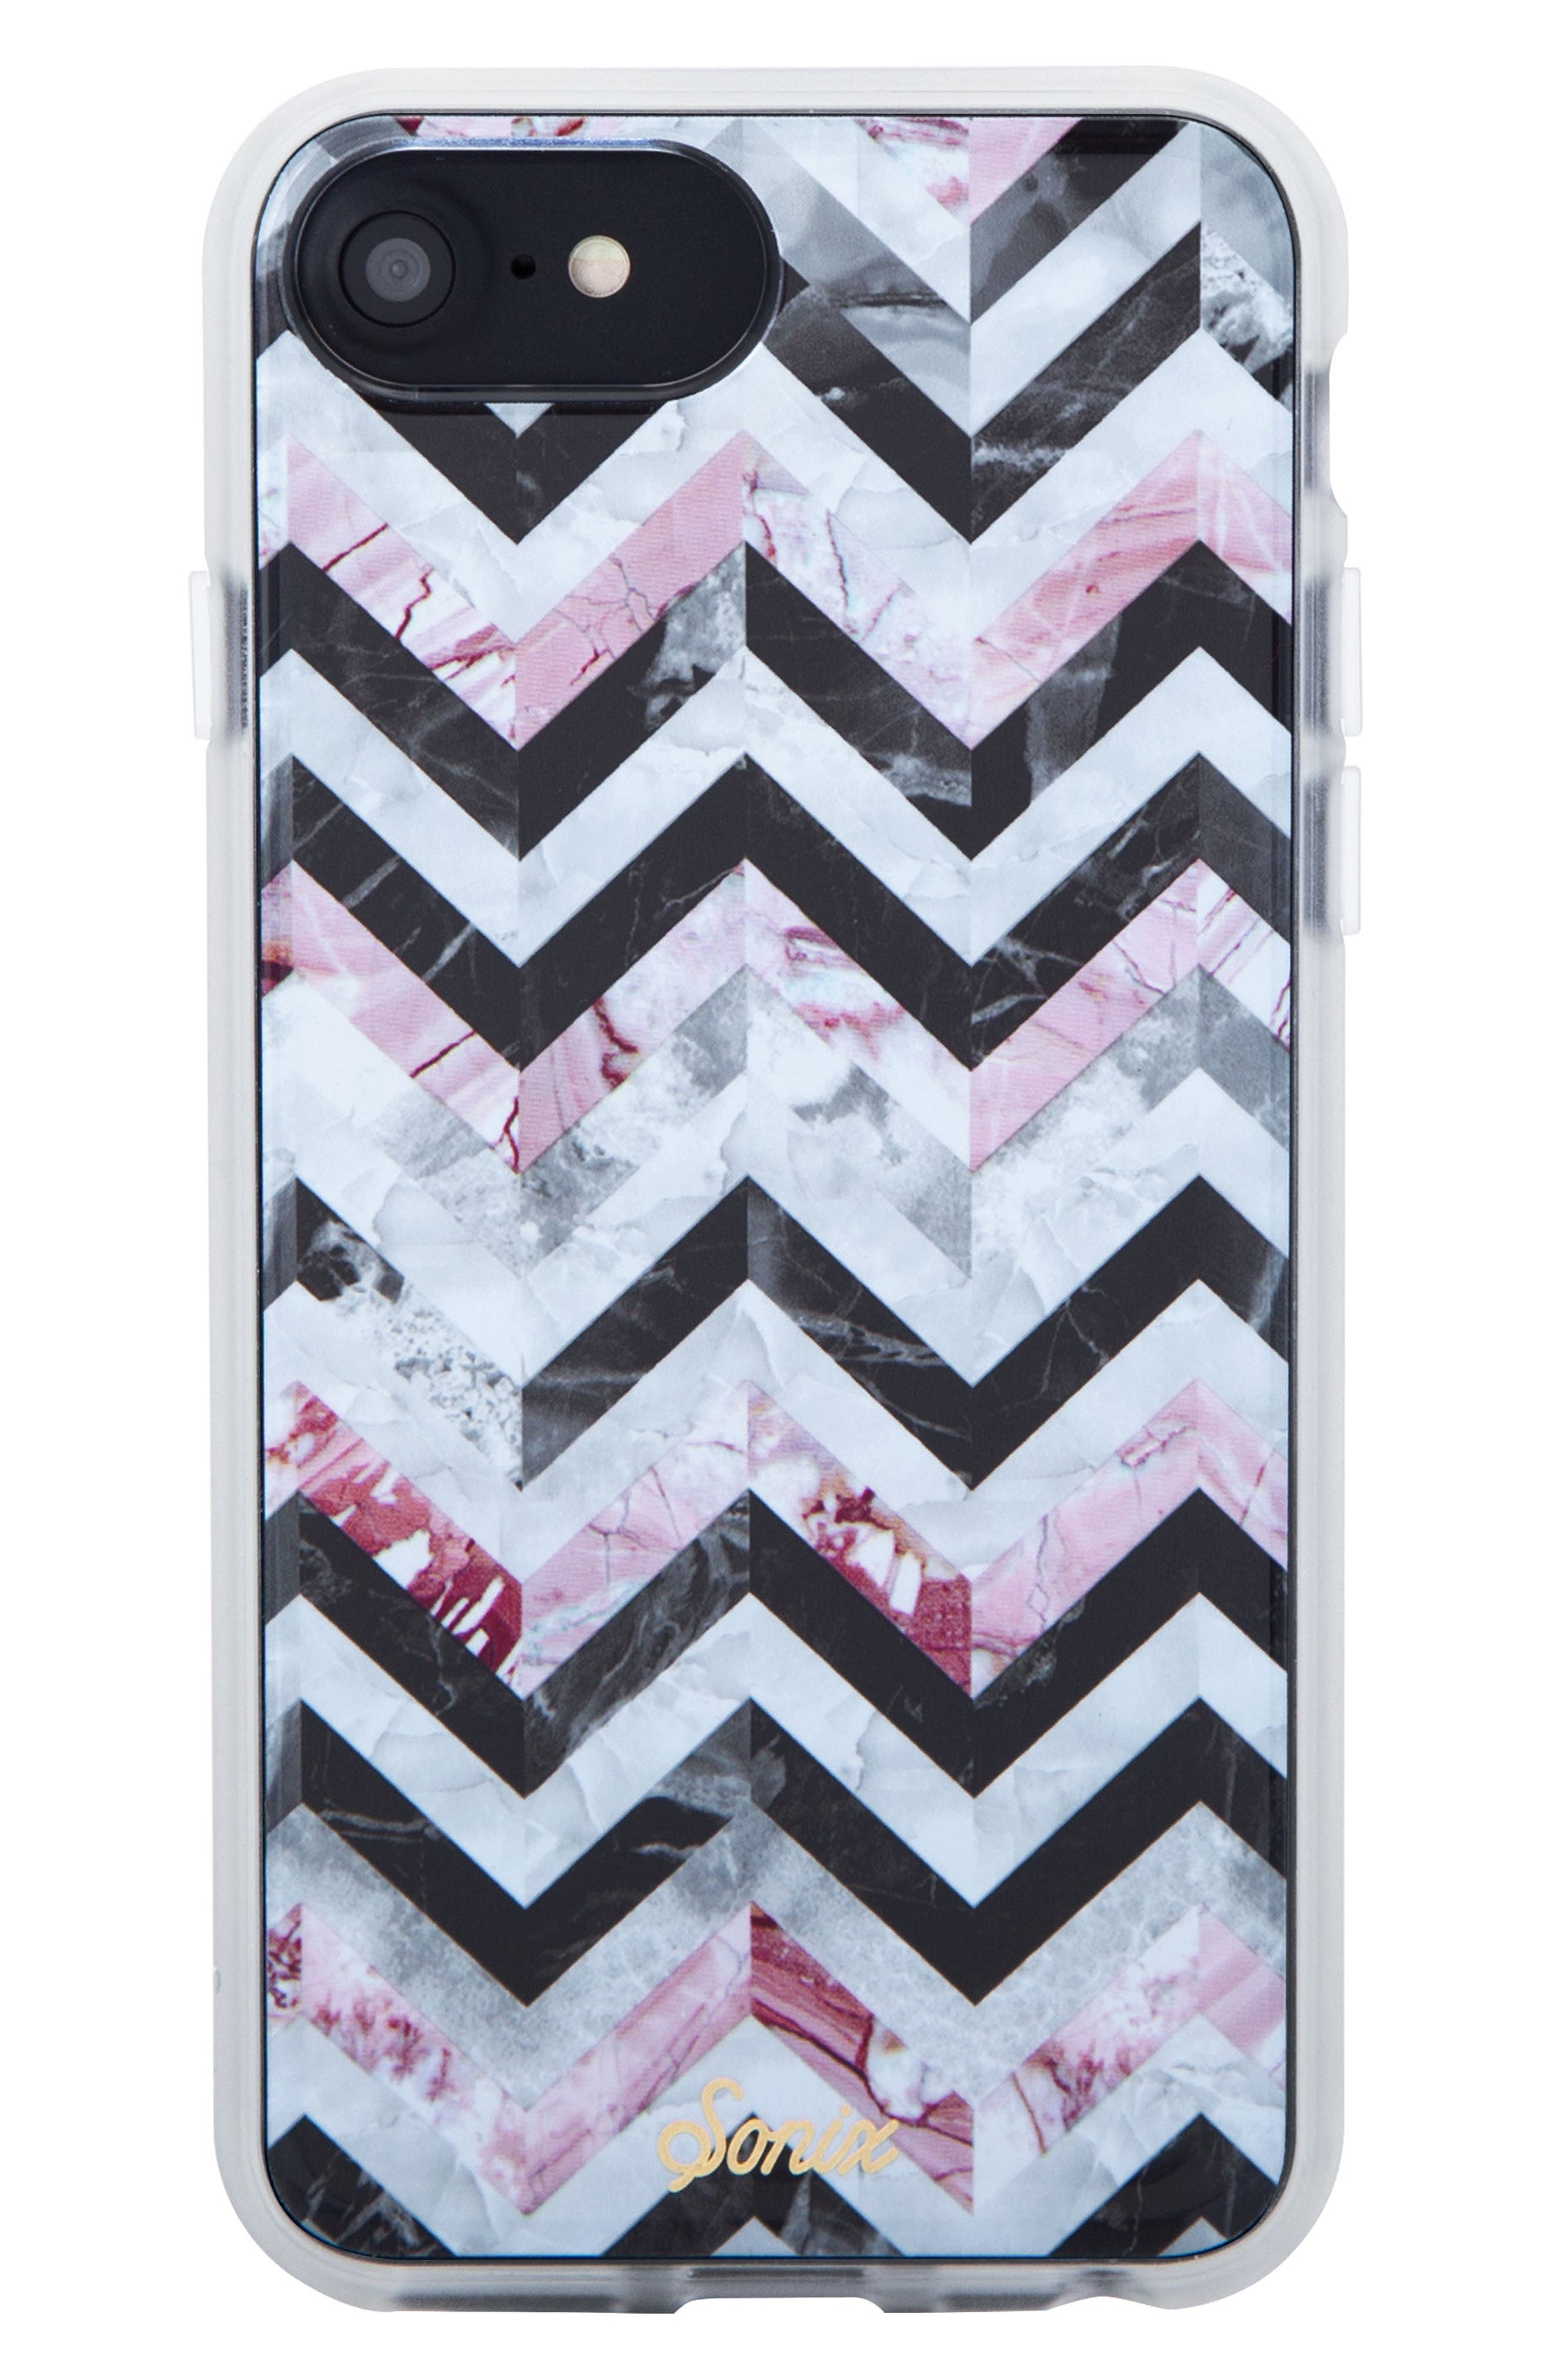 City Tile iPhone 6/6s/7/8 & 6/6s/7/8 Plus Case,                         Main,                         color, BLACK/ MARBLE